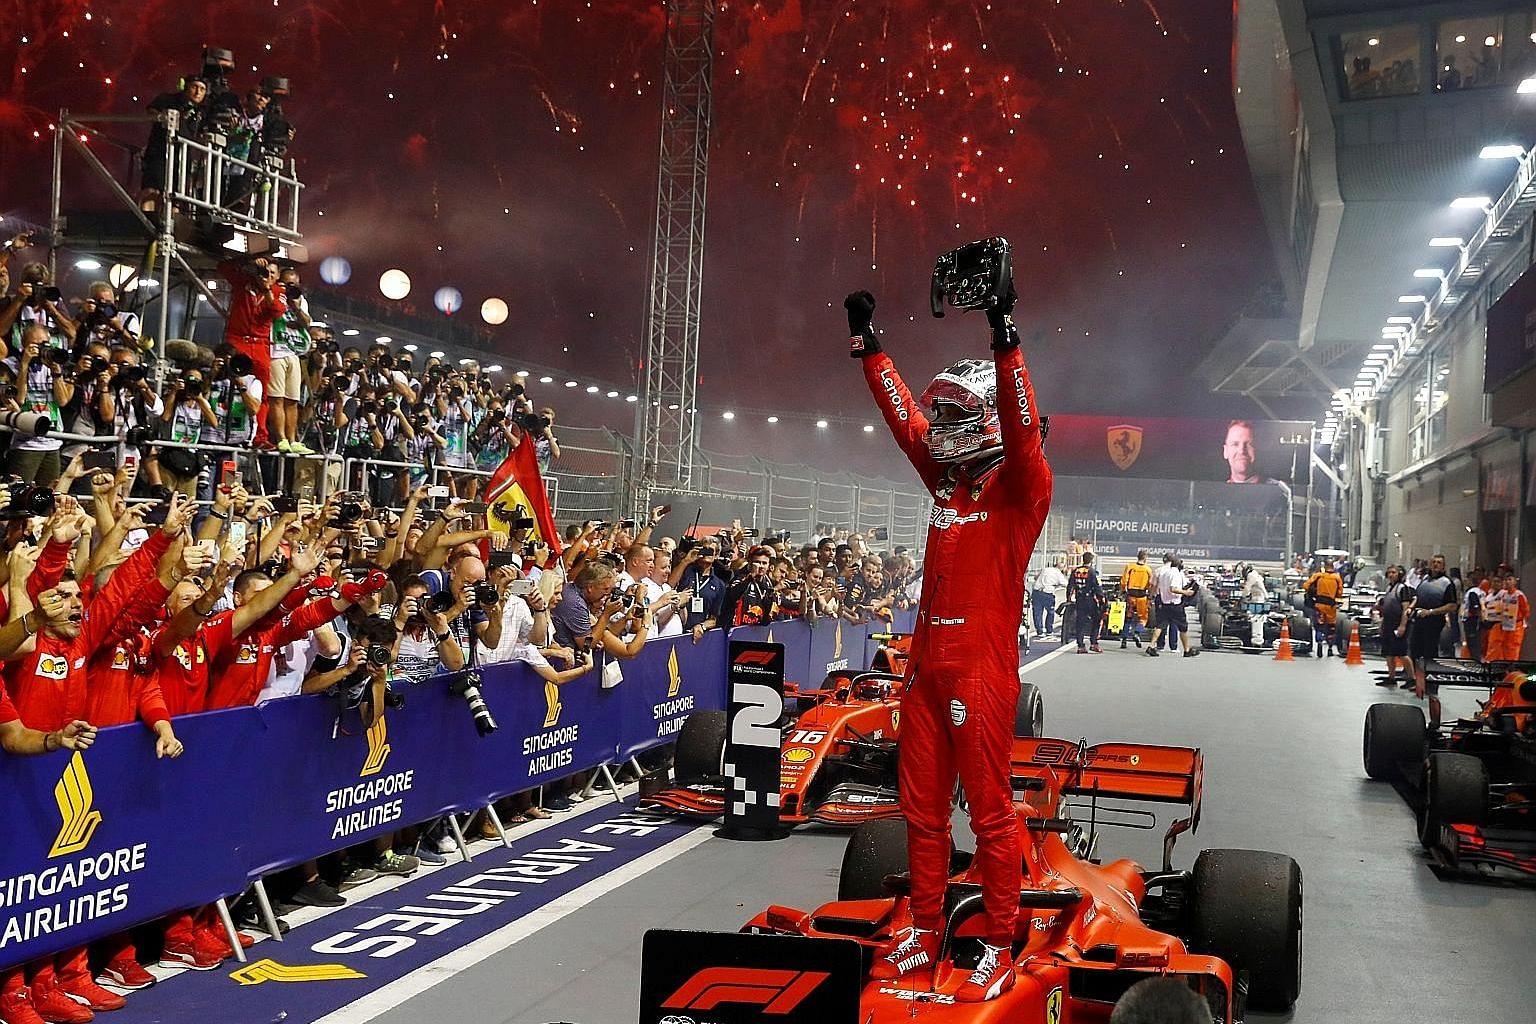 """This year's Singapore Grand Prix led to an uptick in visitor arrivals, which supported retail sales figures for September, said Maybank Kim Eng economist Lee Ju Ye. """"Consumer sentiment may be past the worst, with September numbers showing some improv"""